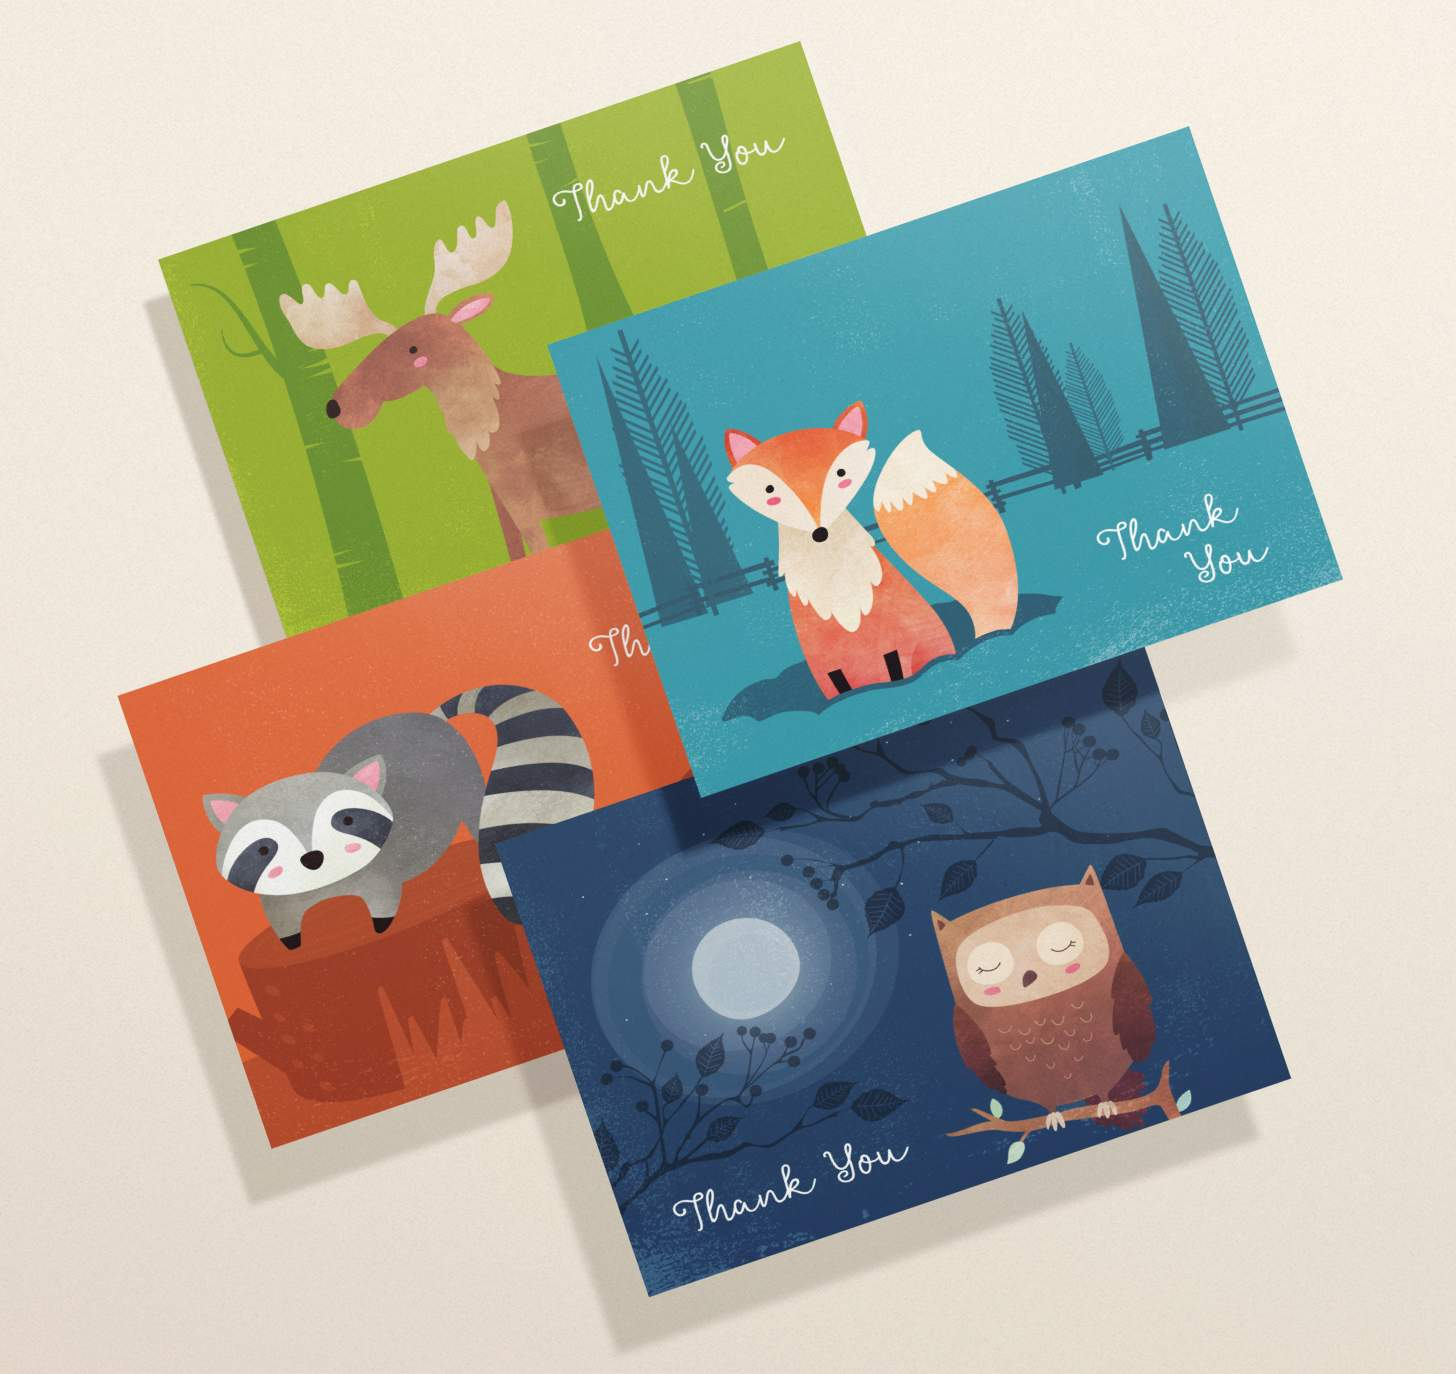 Four overlapping cards with cute owl, raccoon, fox and moose designs